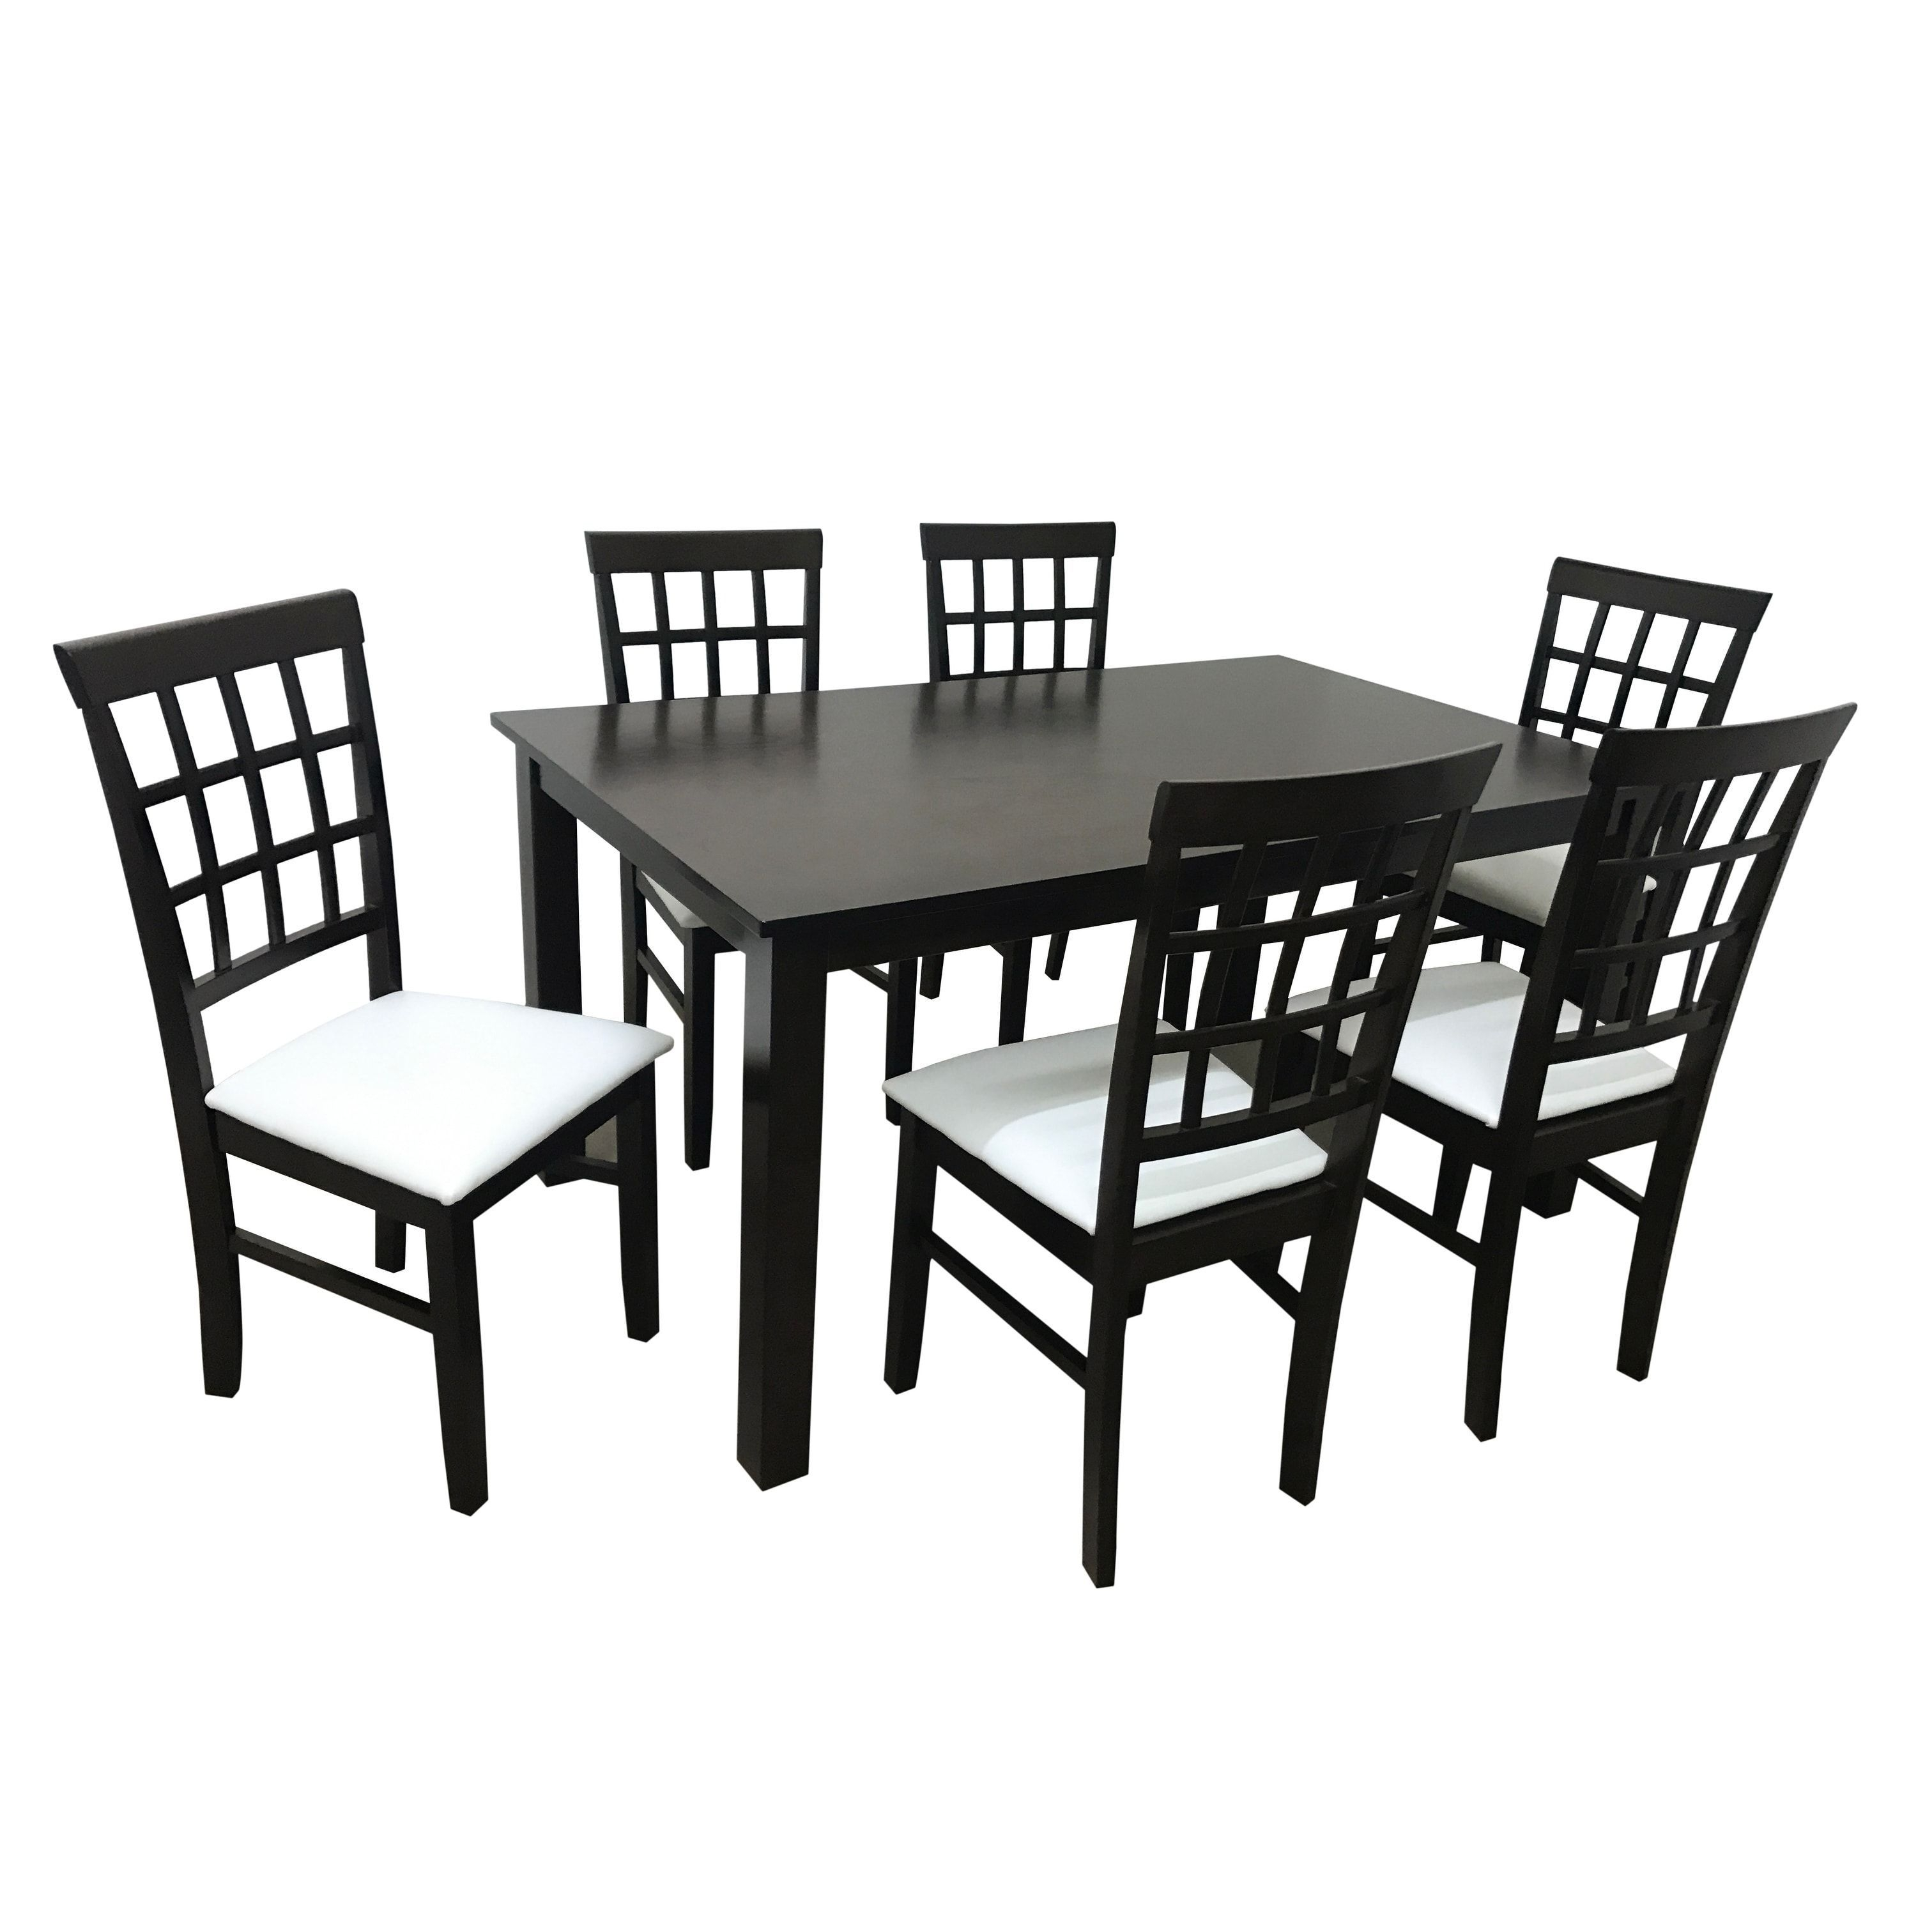 Camden Isle Maygrove Wood Dining Set (4 – 5 Piece Sets – Brown Pertaining To Latest Chapleau Ii 7 Piece Extension Dining Tables With Side Chairs (Image 1 of 20)